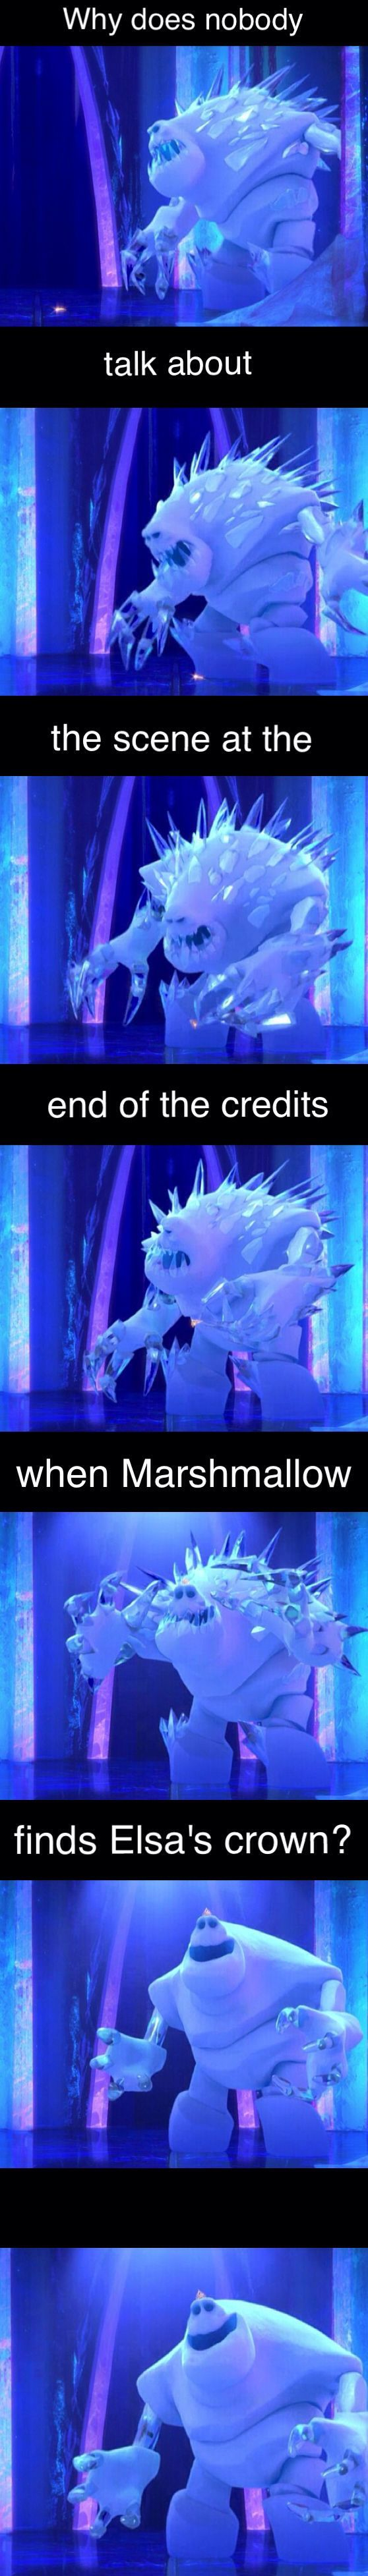 Top 30 Best Frozen Quotes and pics #Quotes - Wuuhhh?? I've never seen this!